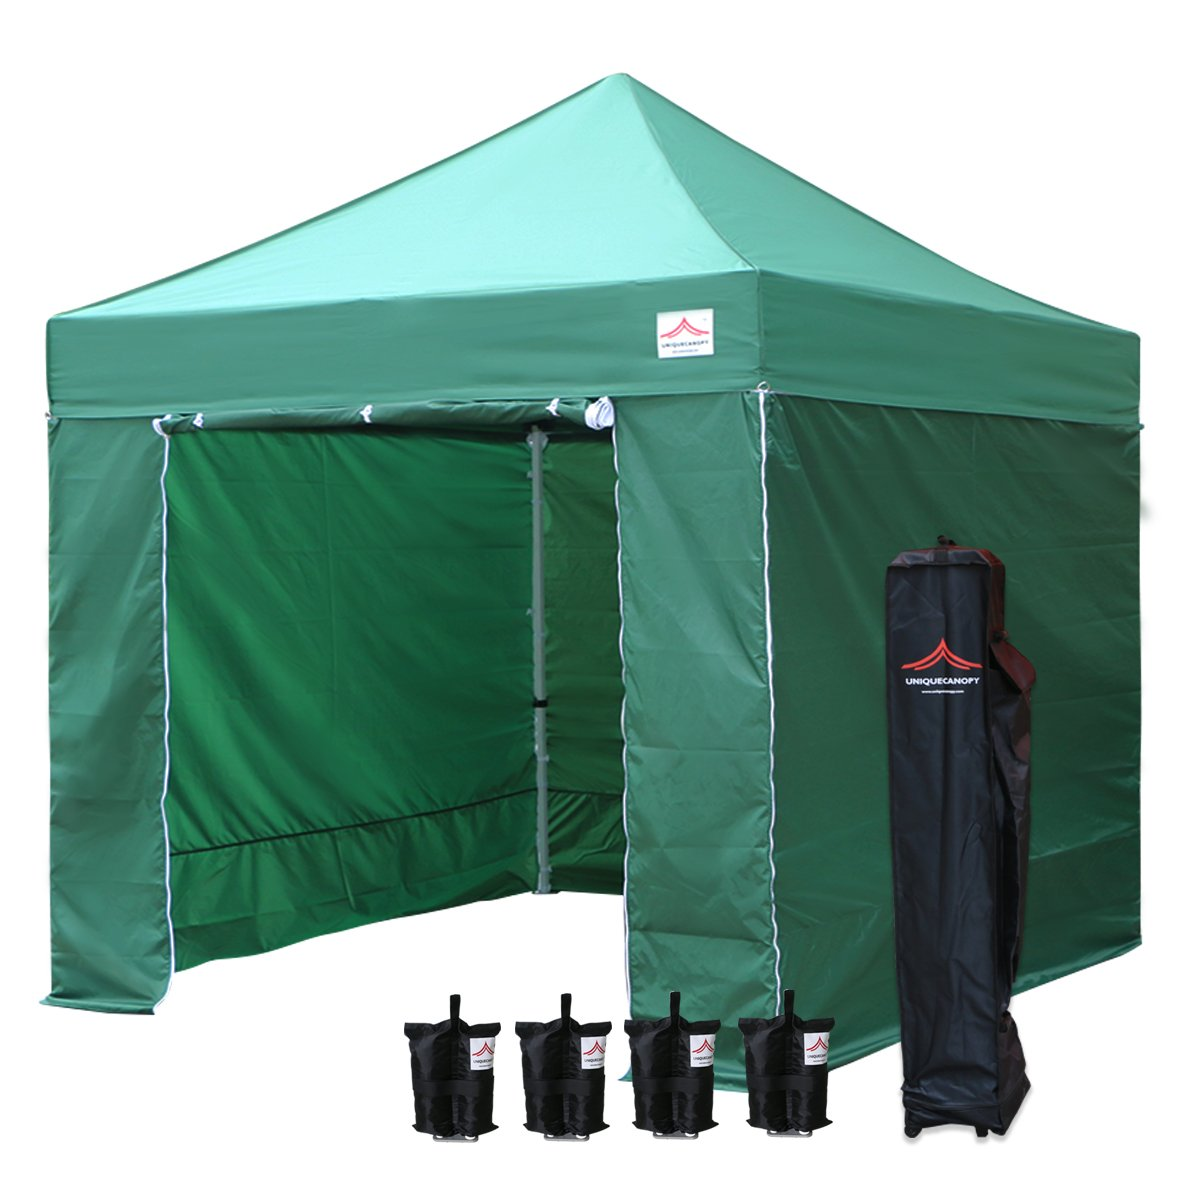 UNIQUECANOPY 10x10 Ez Pop up Canopy Tents for Parties Outdoor Portable Instant Folded Commercial Popup Shelter, with 4 Zippered Side Walls and Wheeled Carrying Bag Bonus 4 Sandbags Dark Green